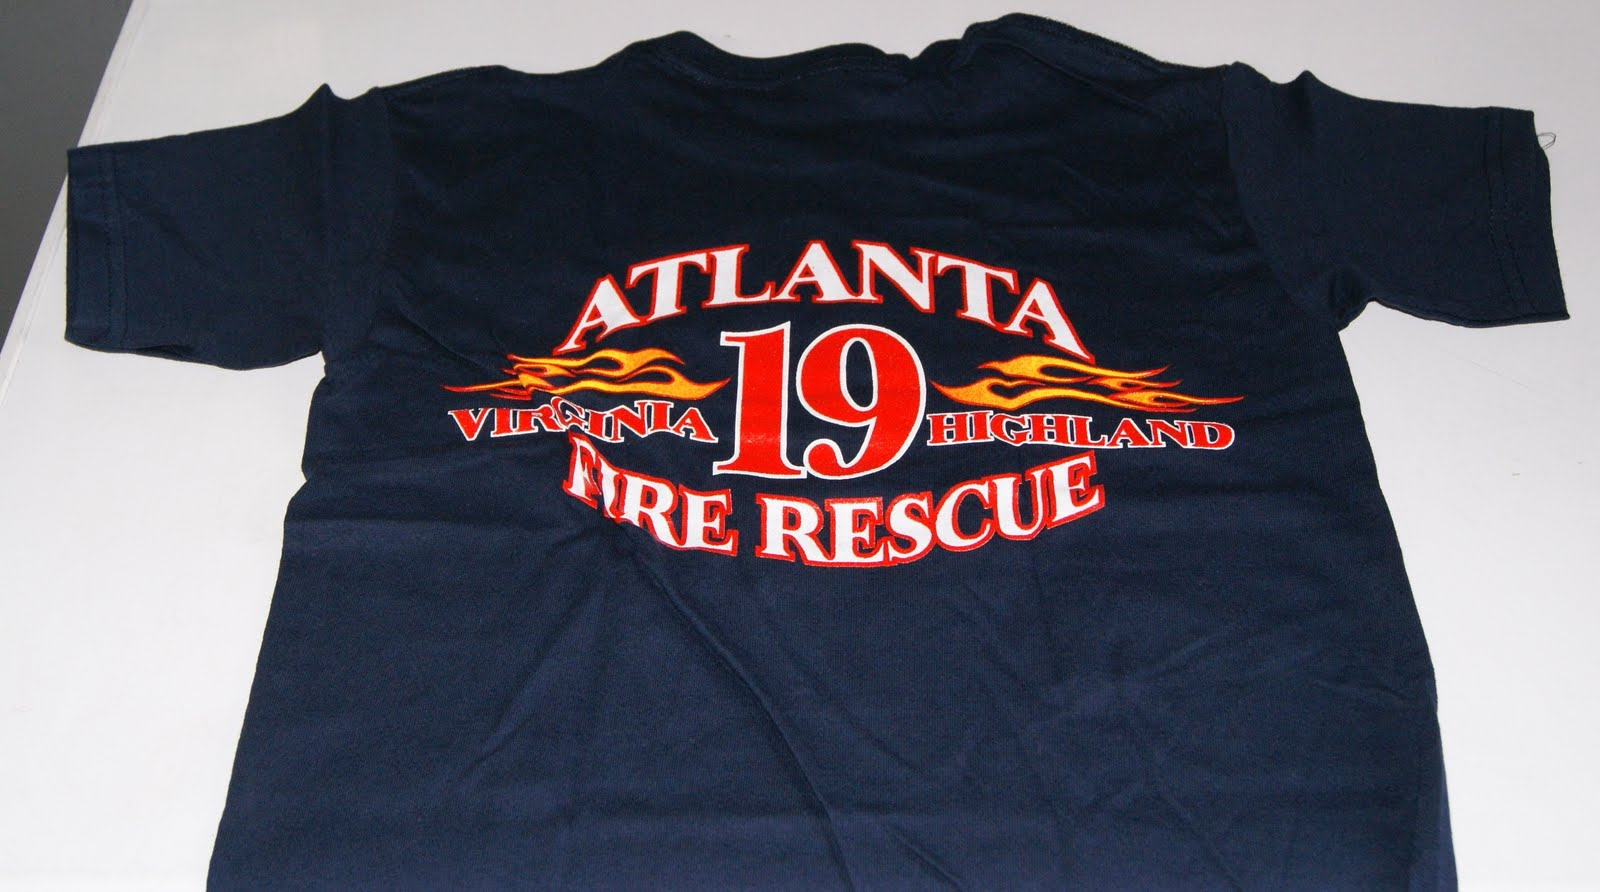 Atlanta Fire Station 19 Help Renovate Atlantas Oldest Firehouse